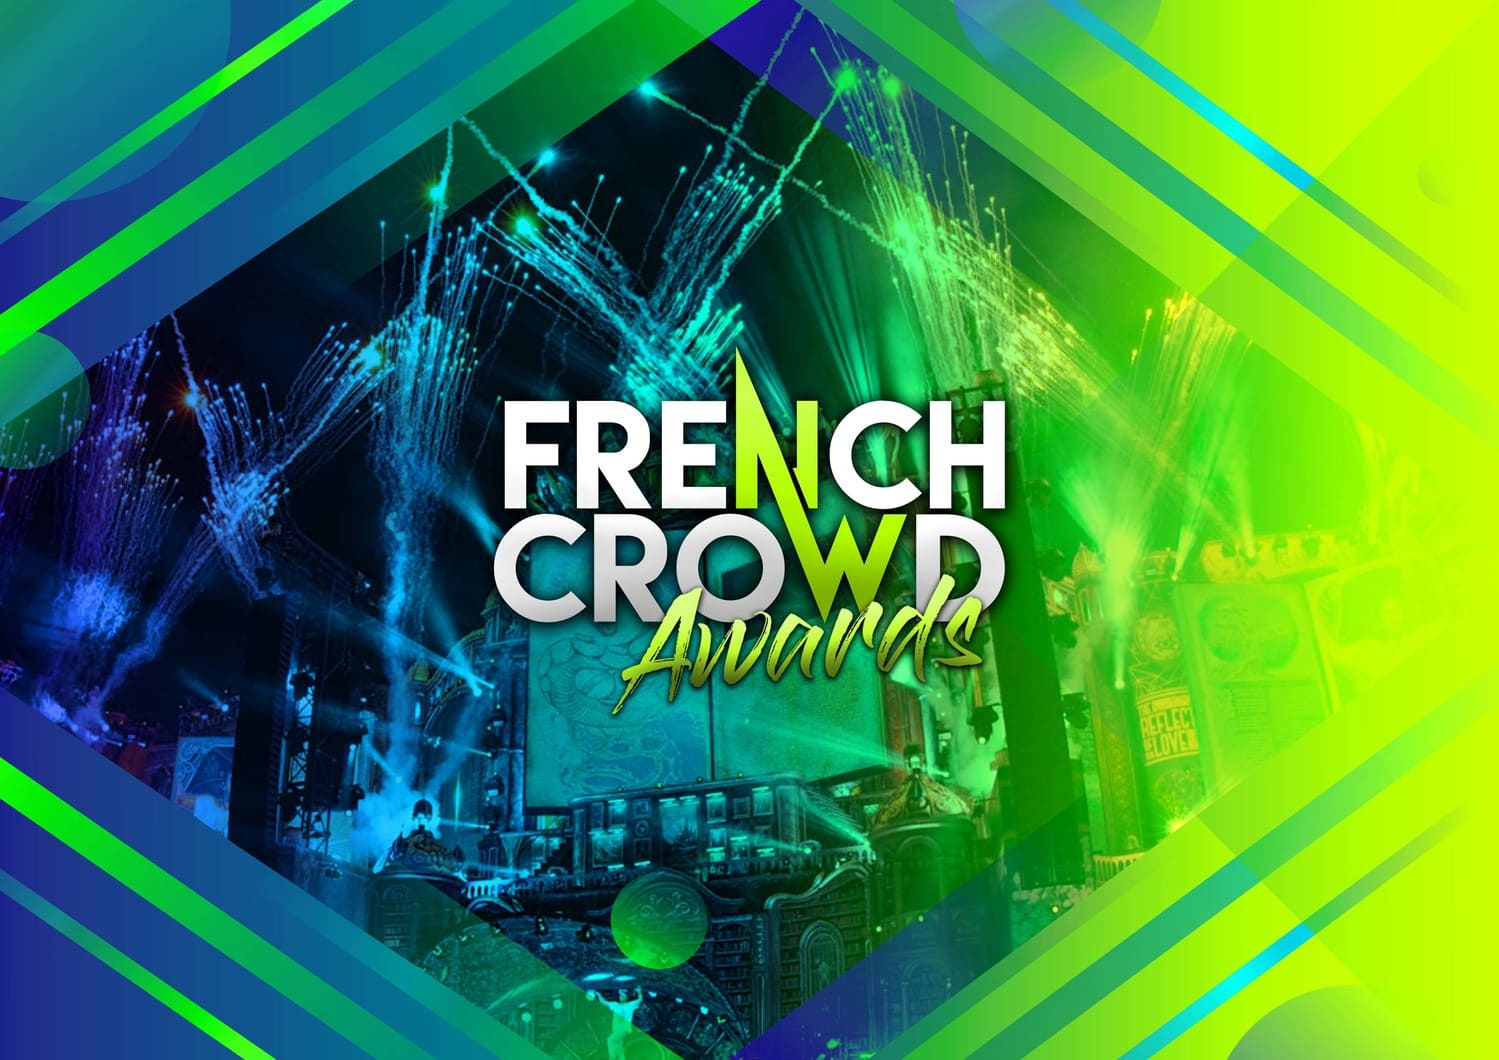 FRENCH CROWD AWARDS 2019